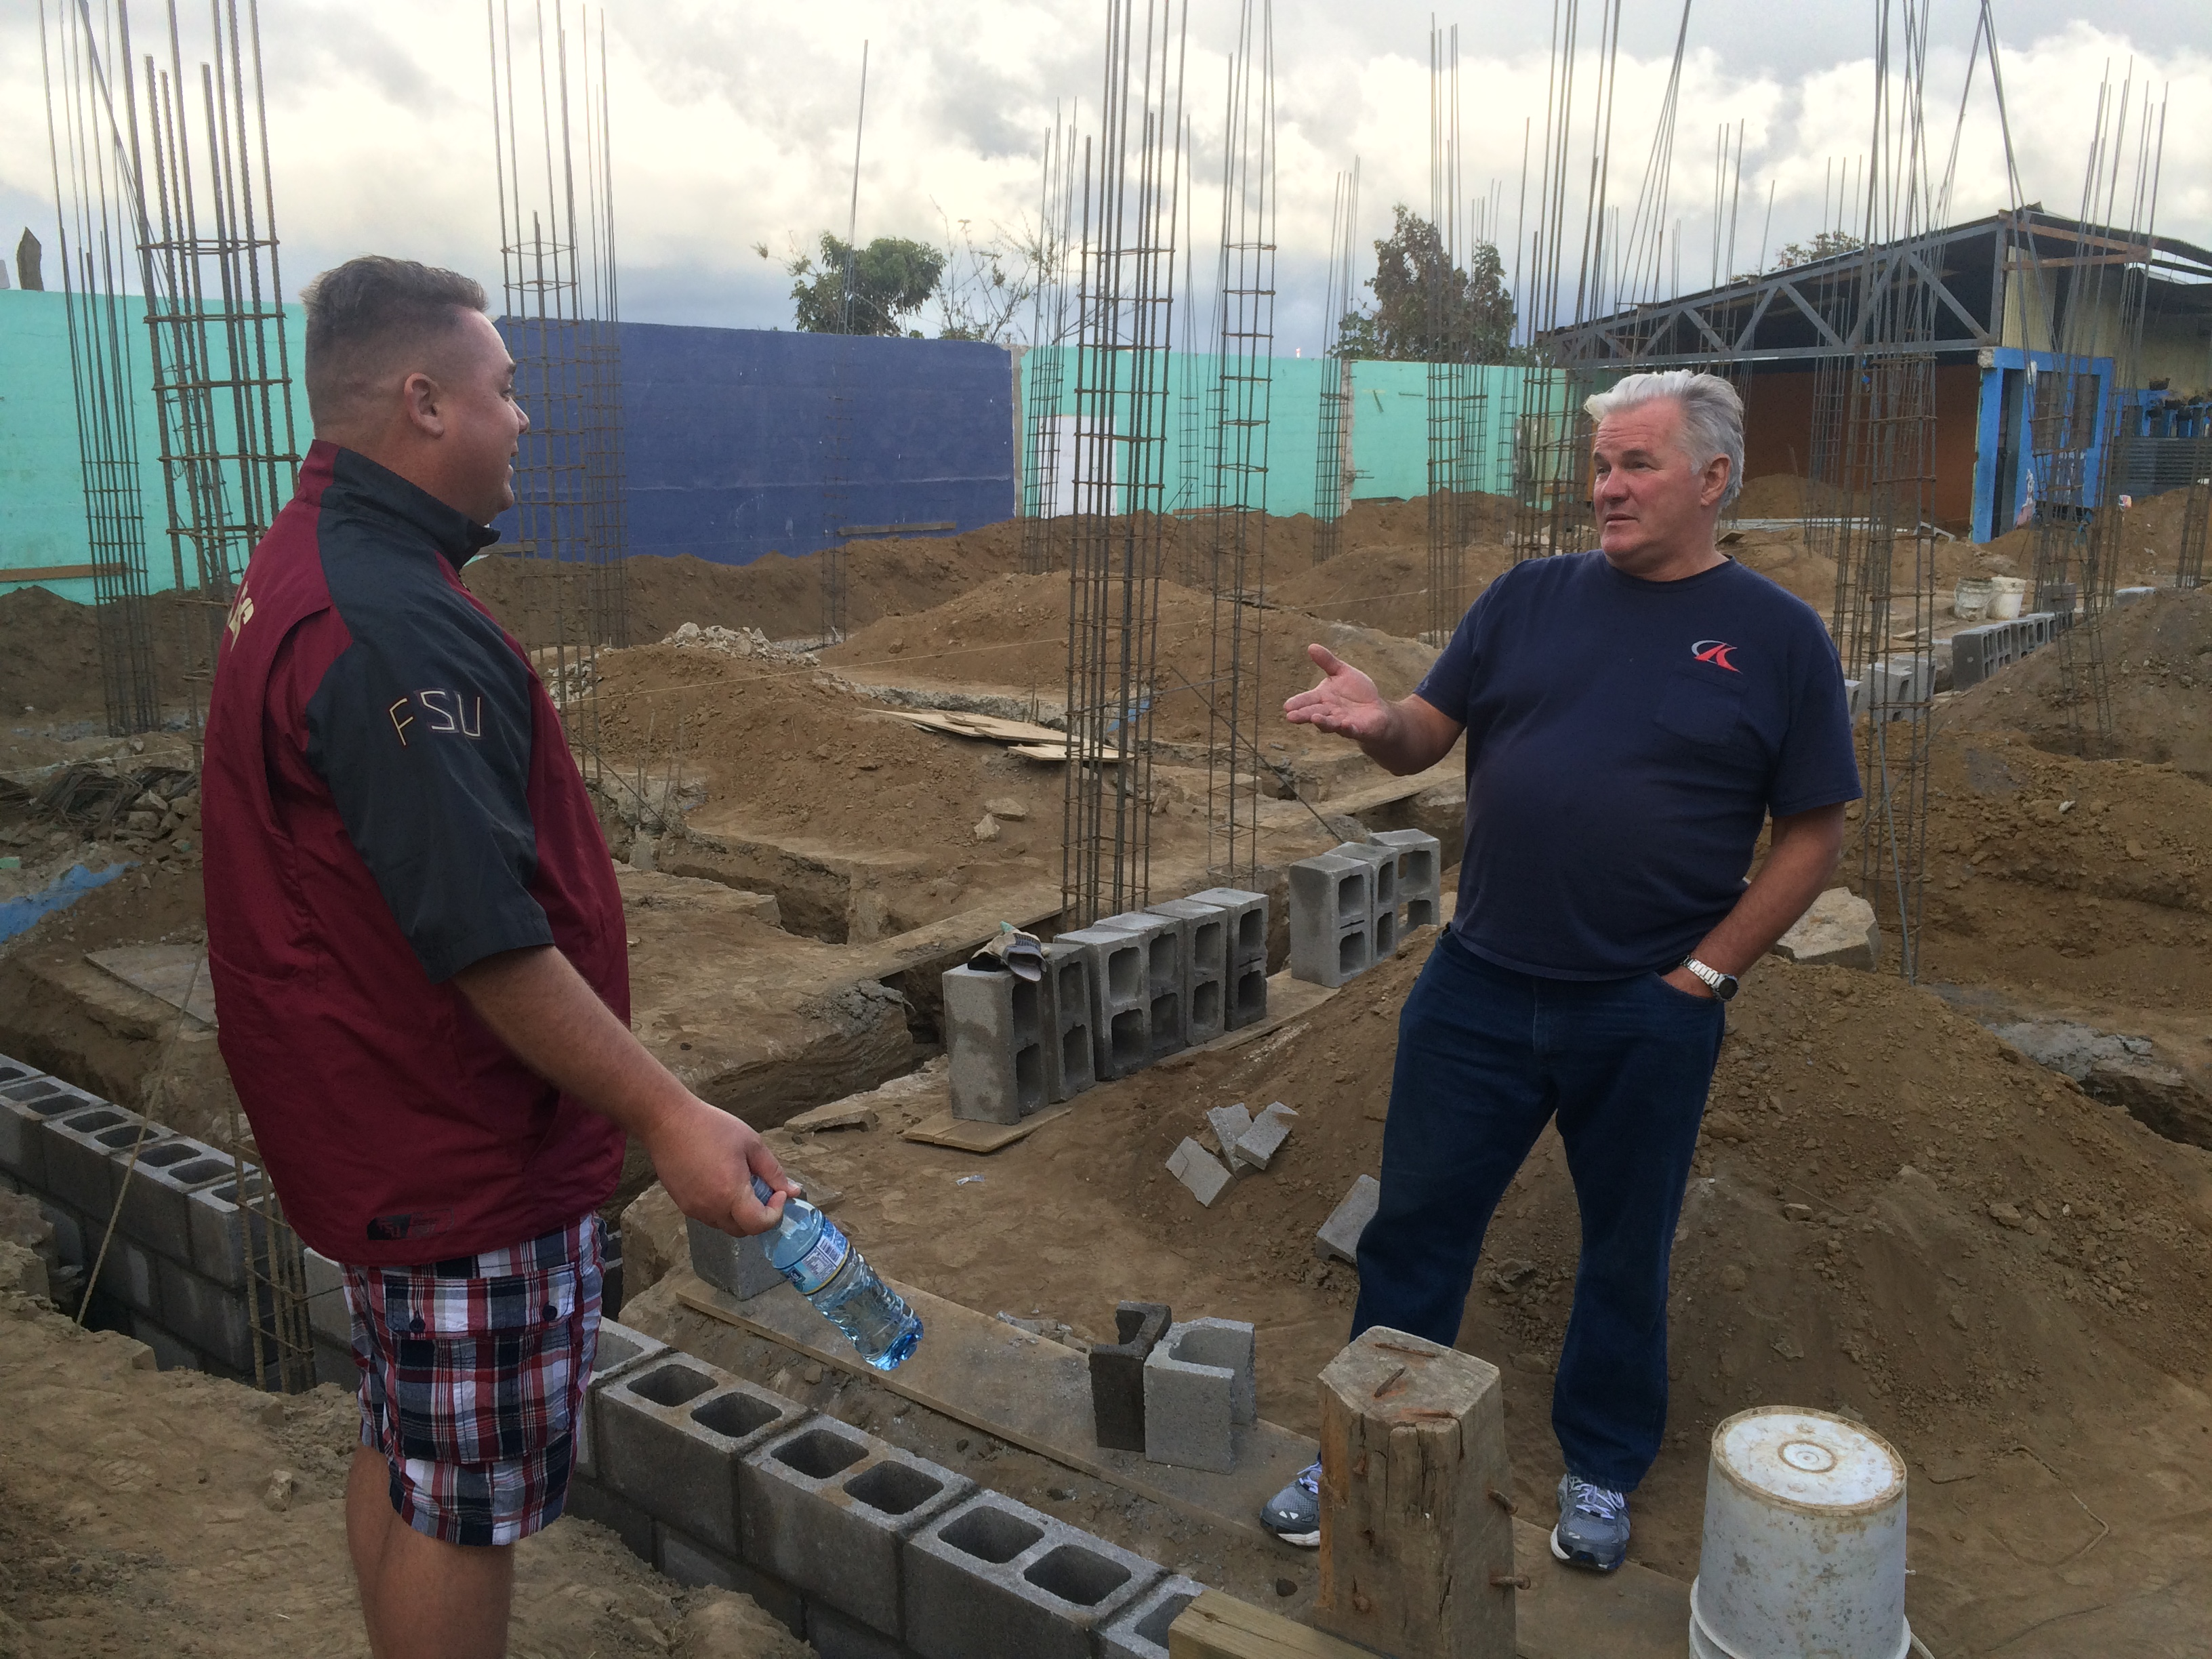 Tim & Steve discussing the hospital construction.